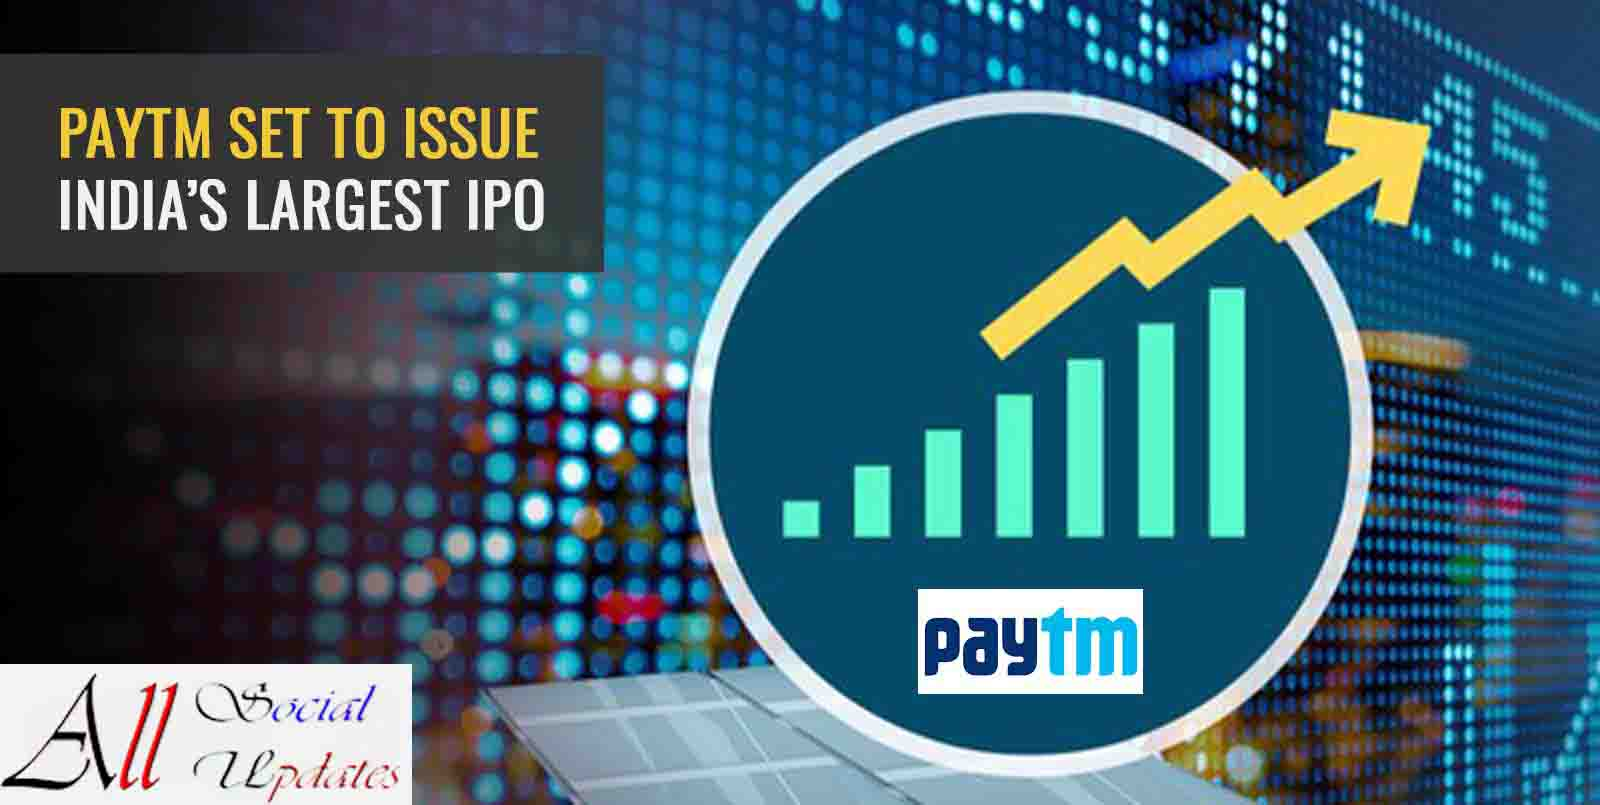 Paytm IPO Date, Price, Listing, Allotment, GMP, Issue Size, DRHP, All Details, & Reviews